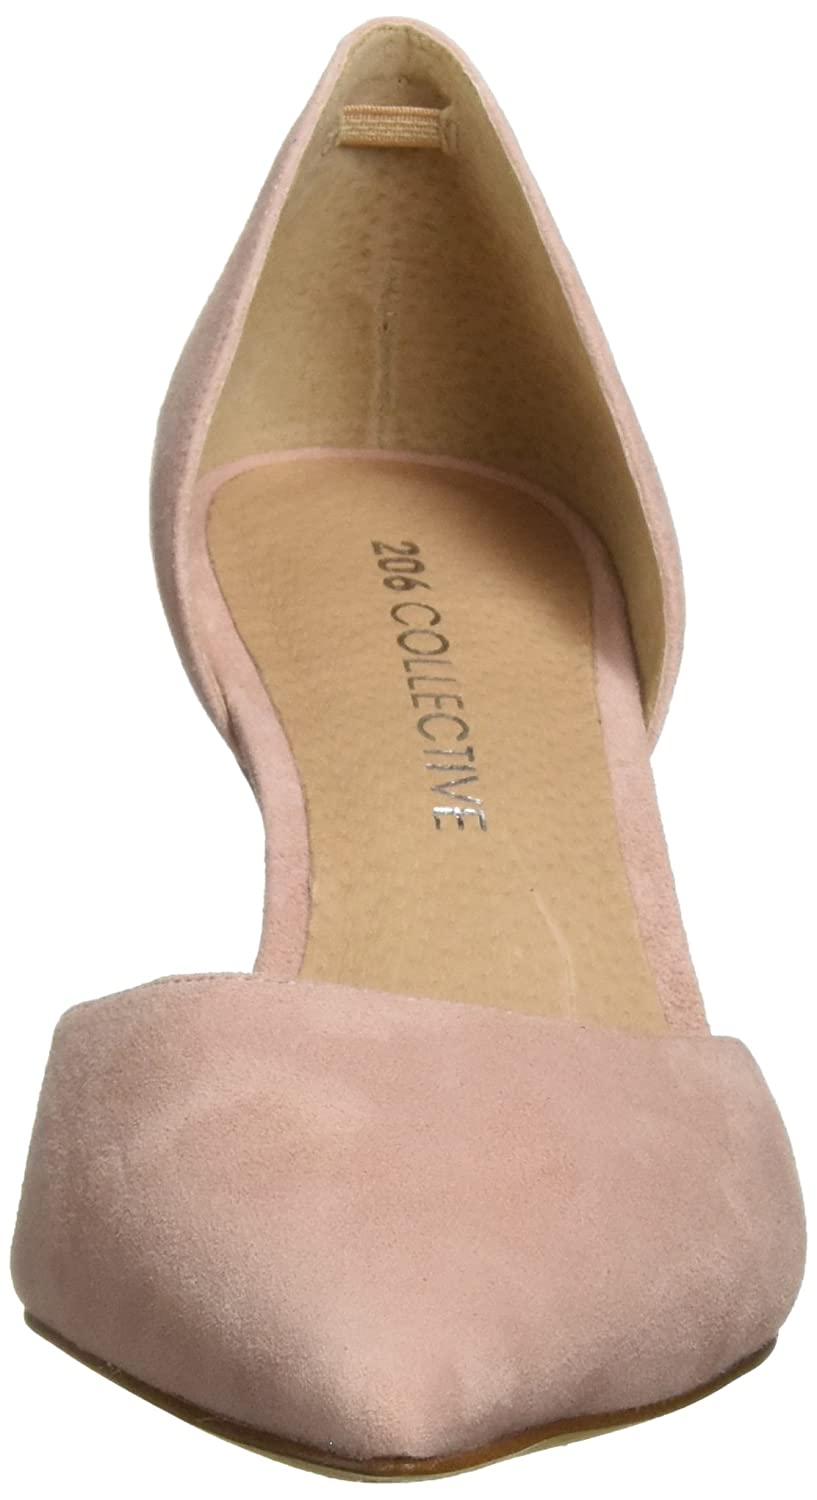 206 Collective Women's Adelaide D'Orsay Dress Pump B07894ZRSJ 10 B(M) US|Rose Suede